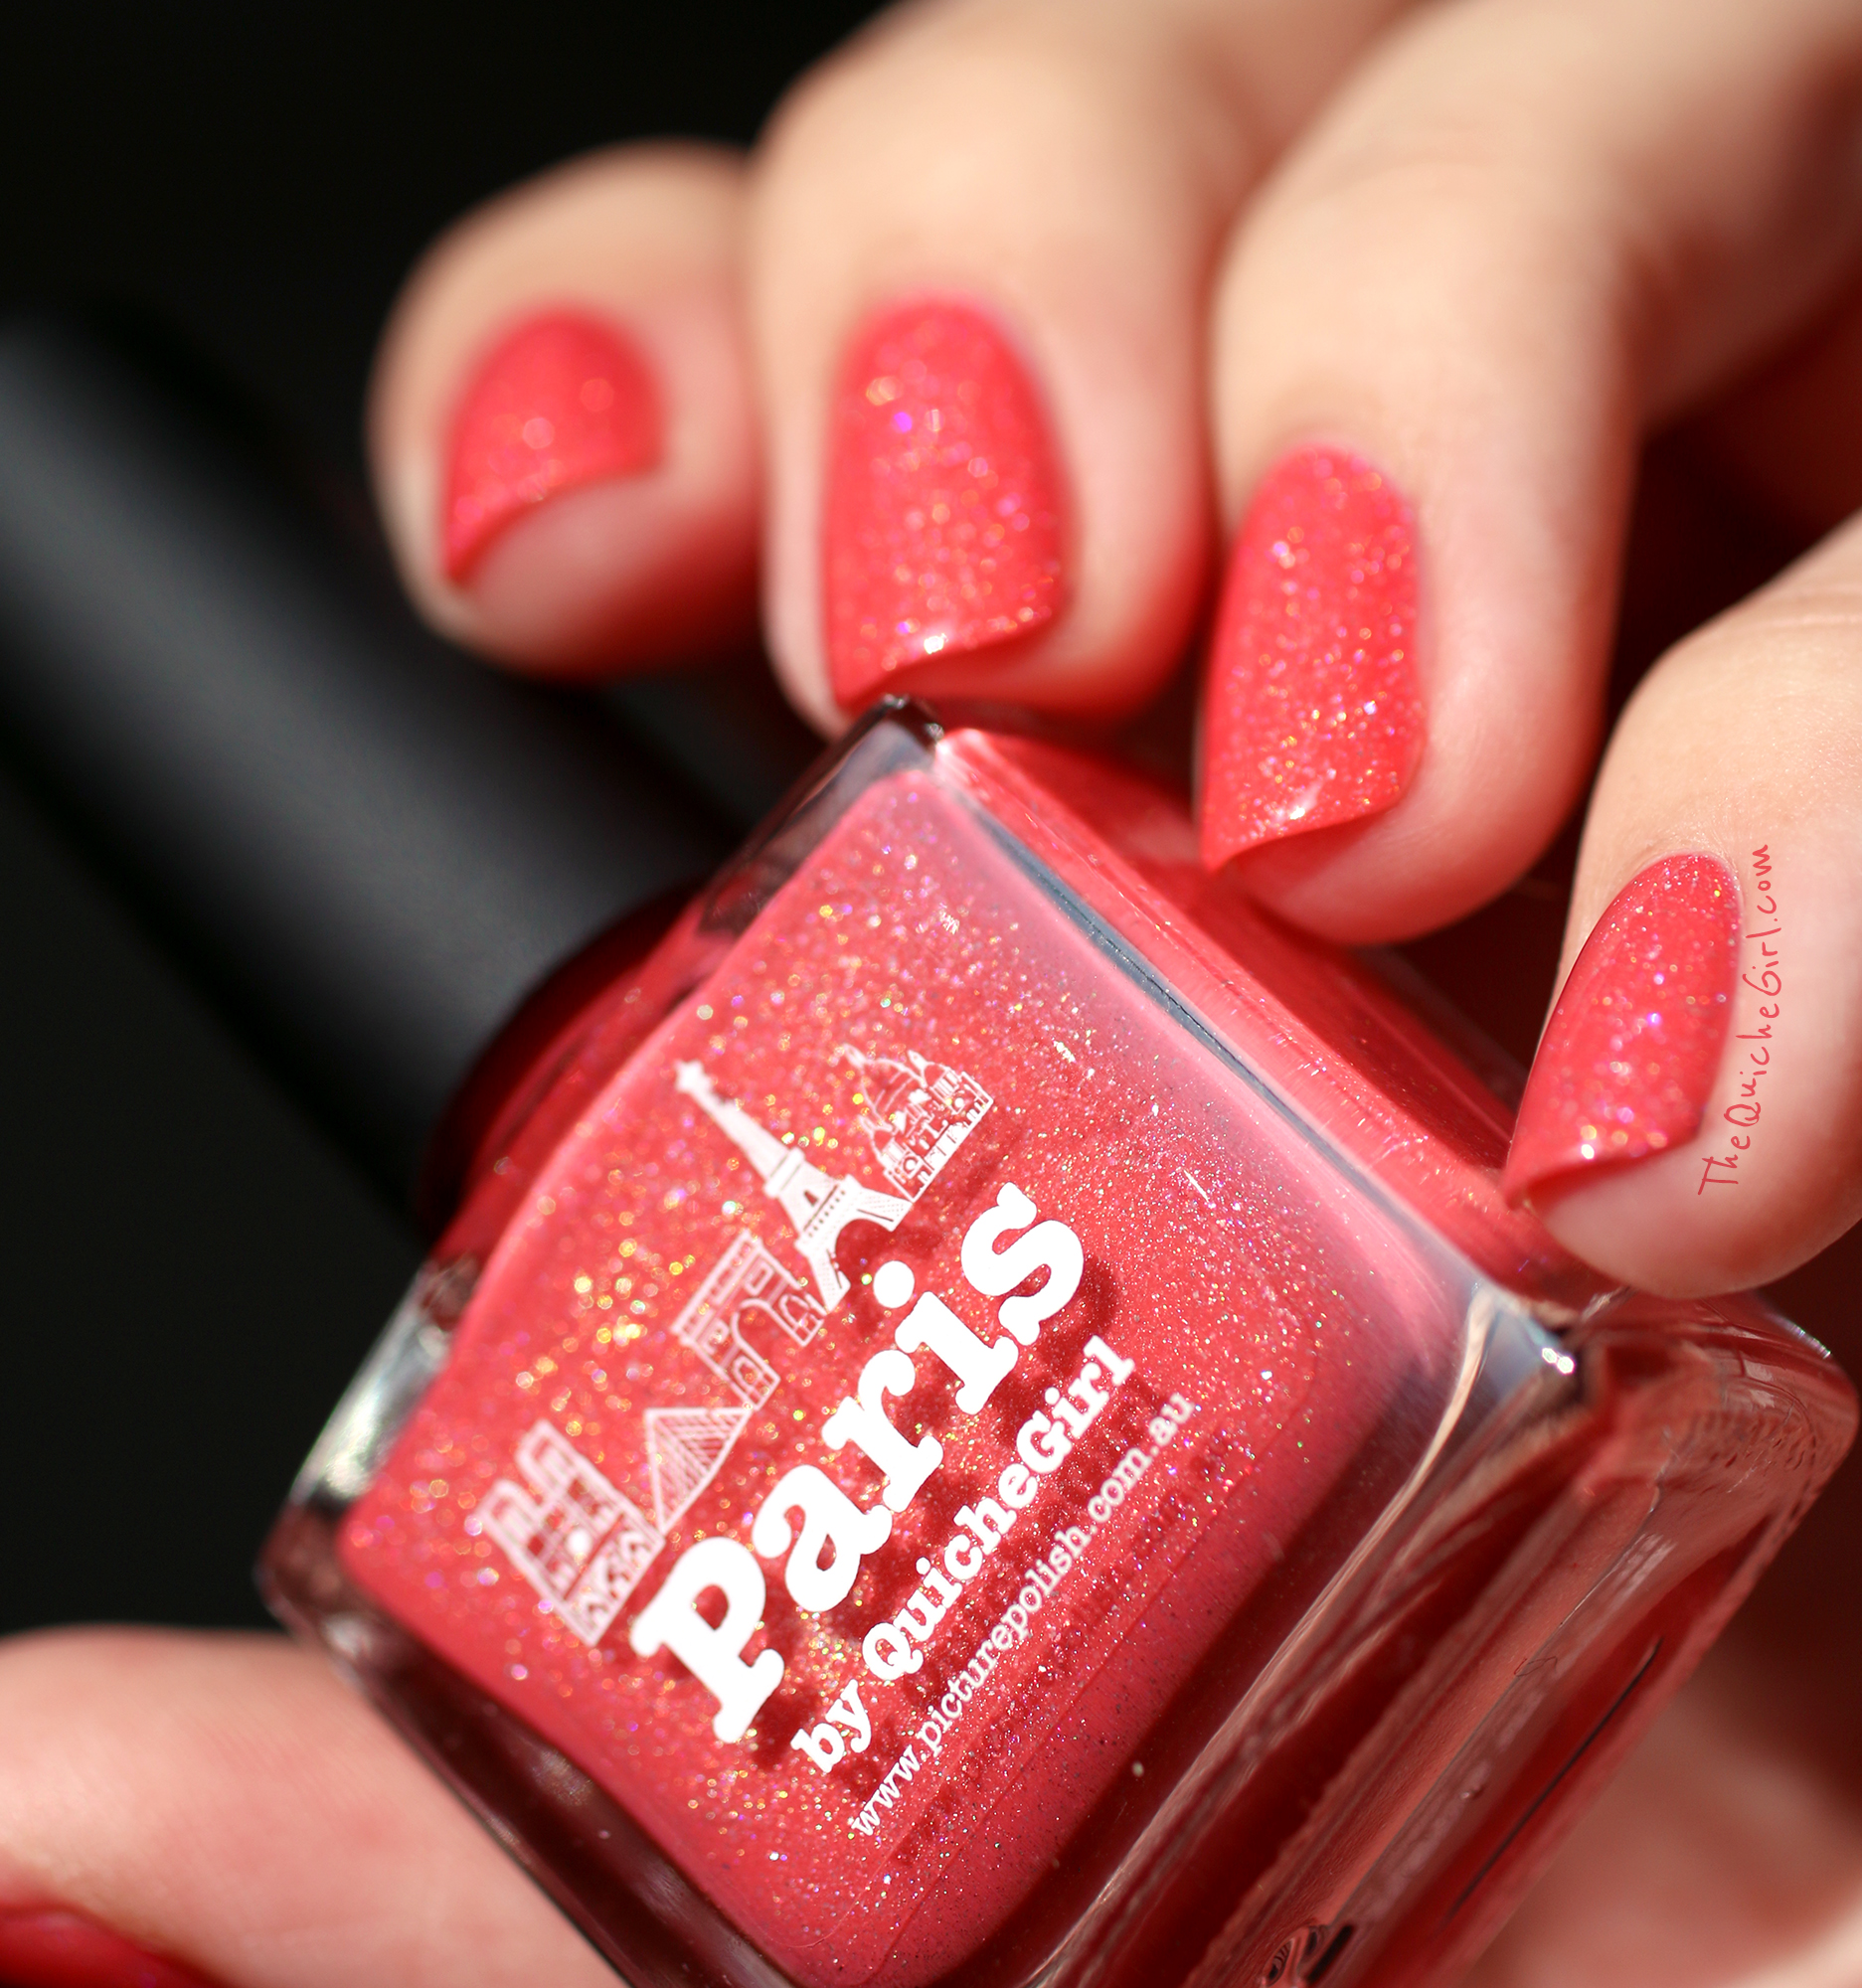 Paris, reborn, Picture Polish, packaging, QuicheGirl